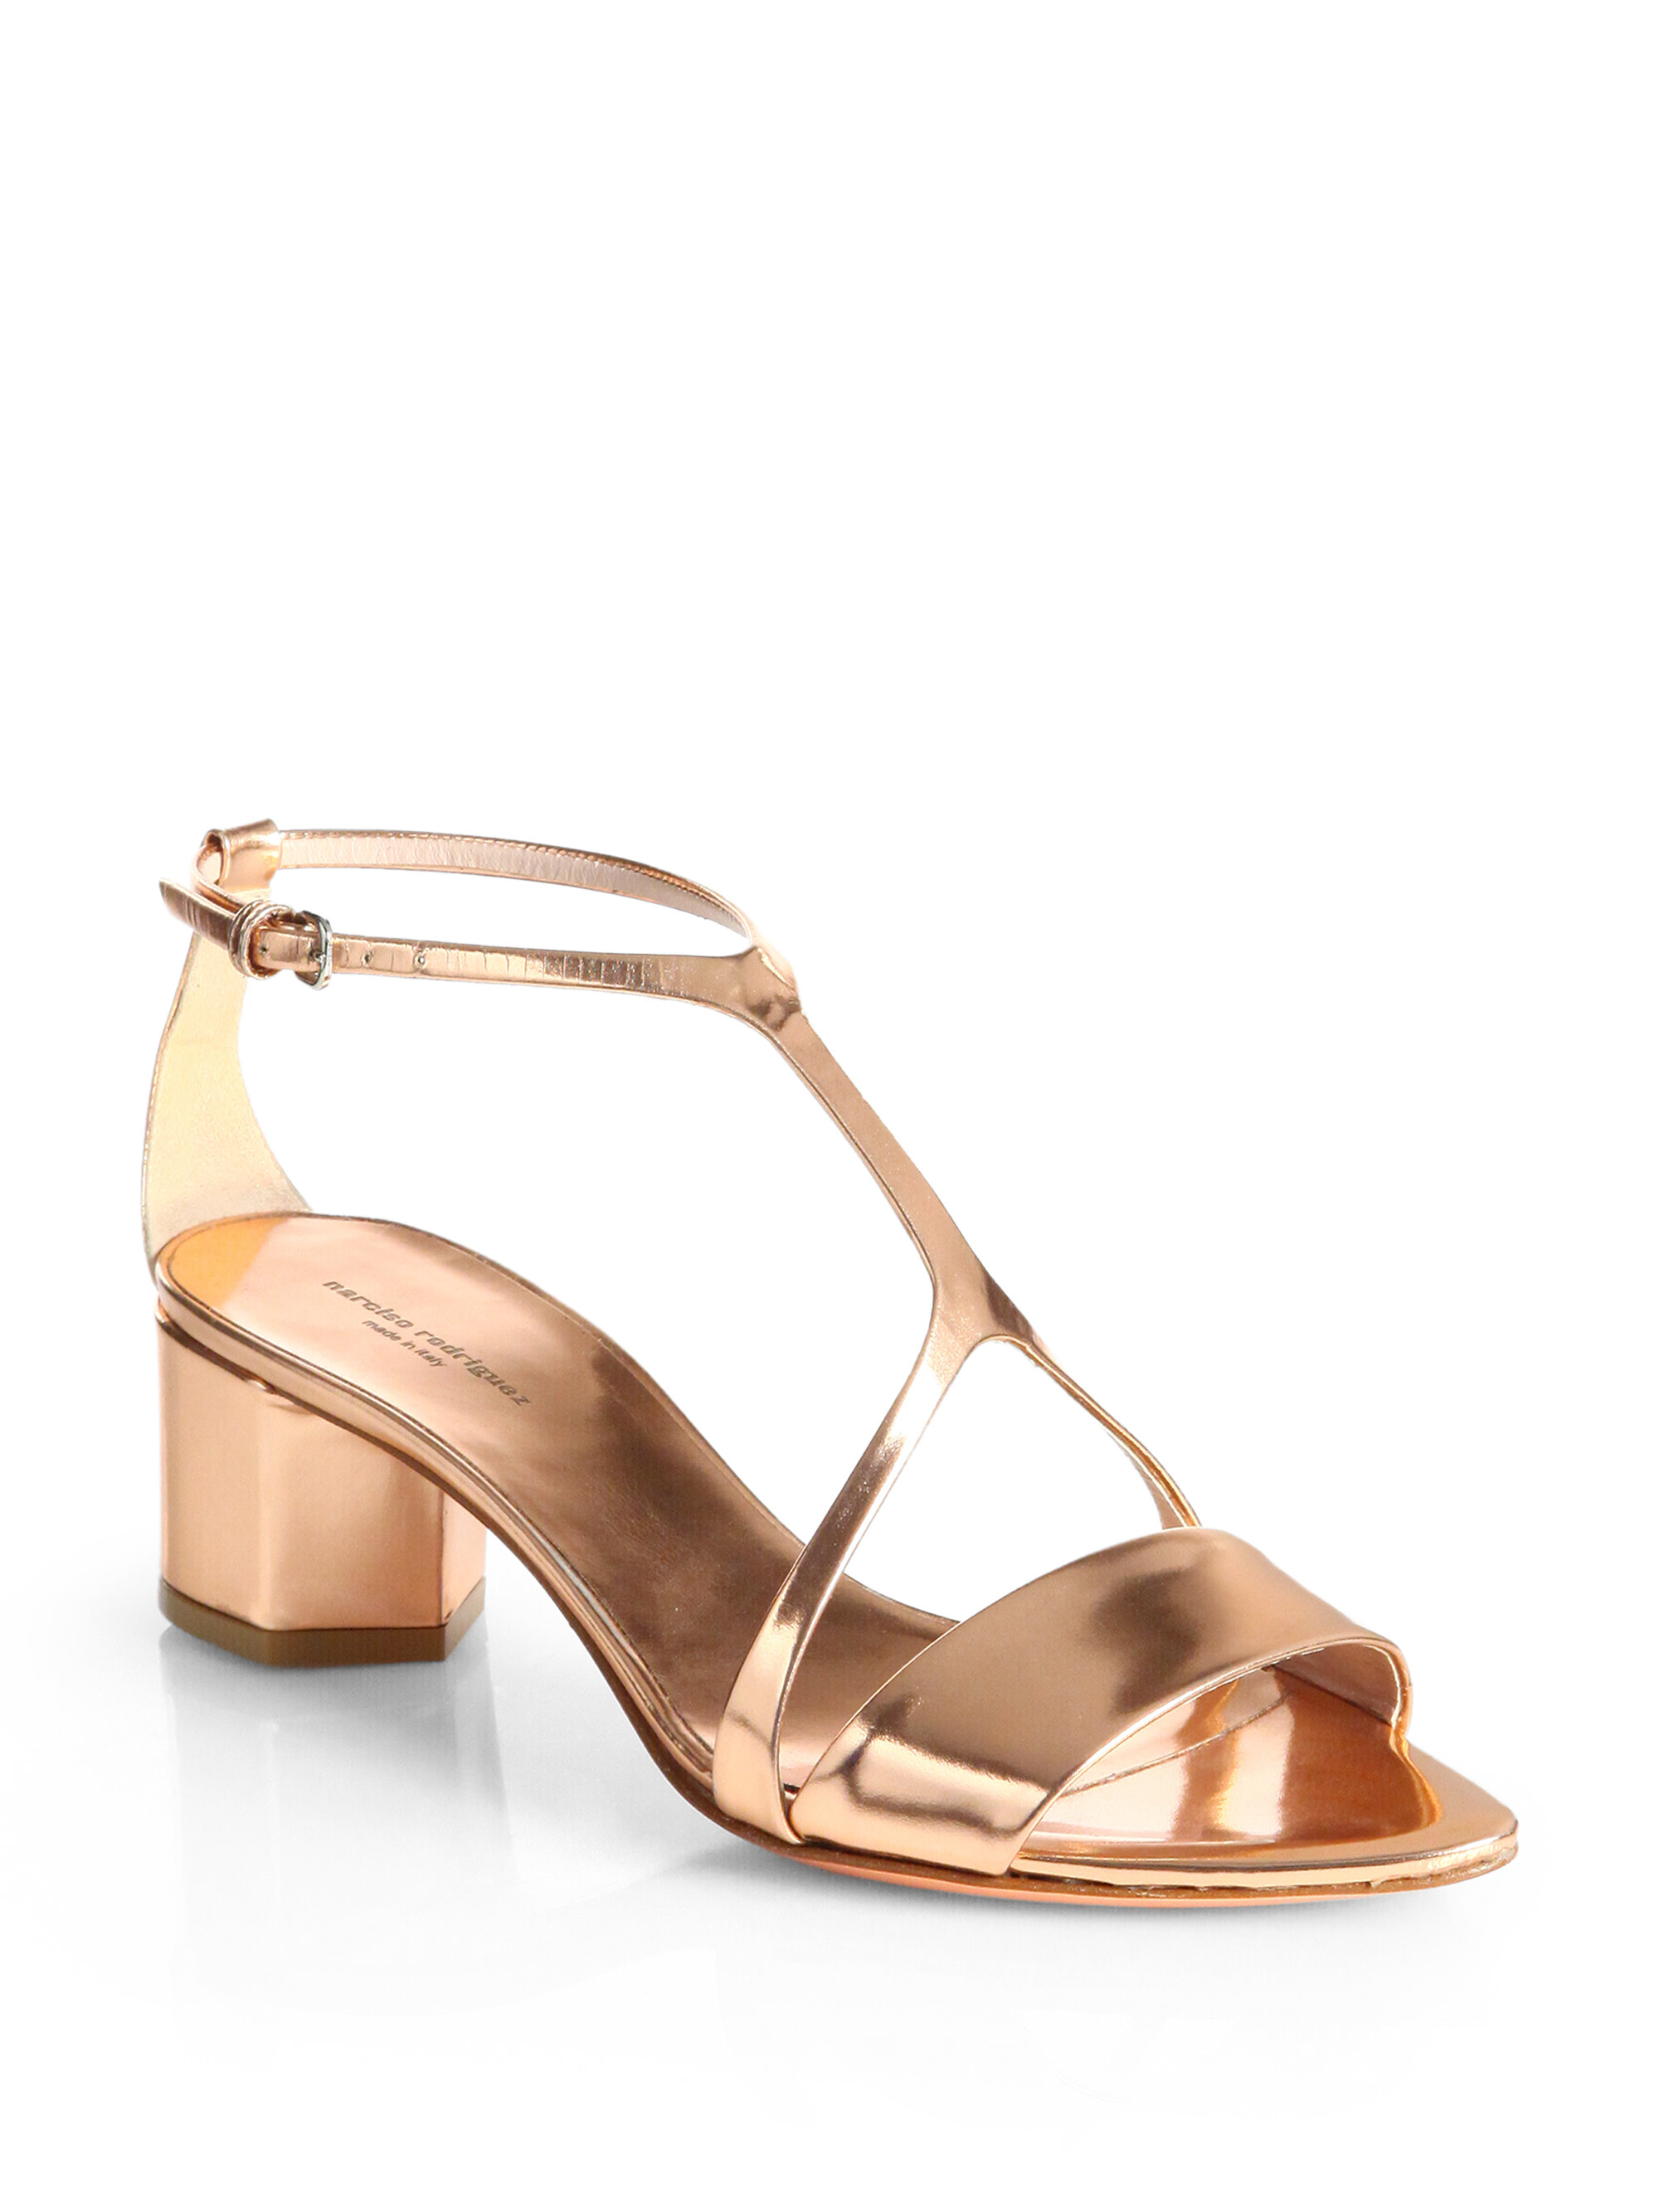 Narciso Rodriguez Leather Slingback Sandals view cheap price cheap sale footlocker pictures ebay online 1QvTE40v7D